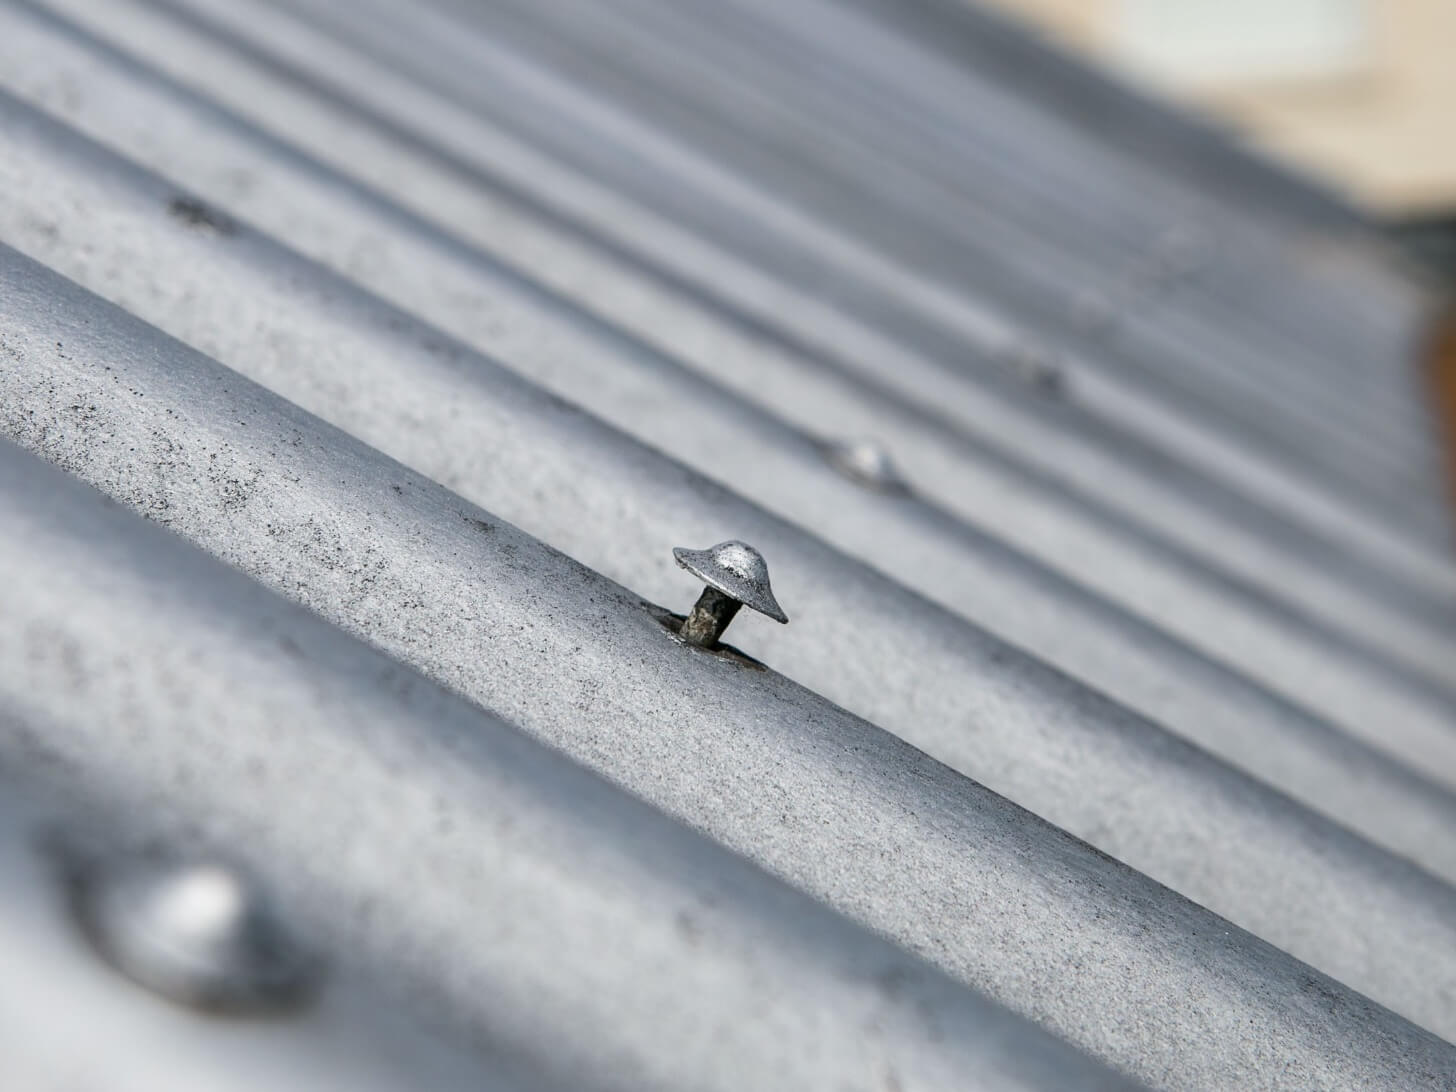 Lifted nails on a leaking roof